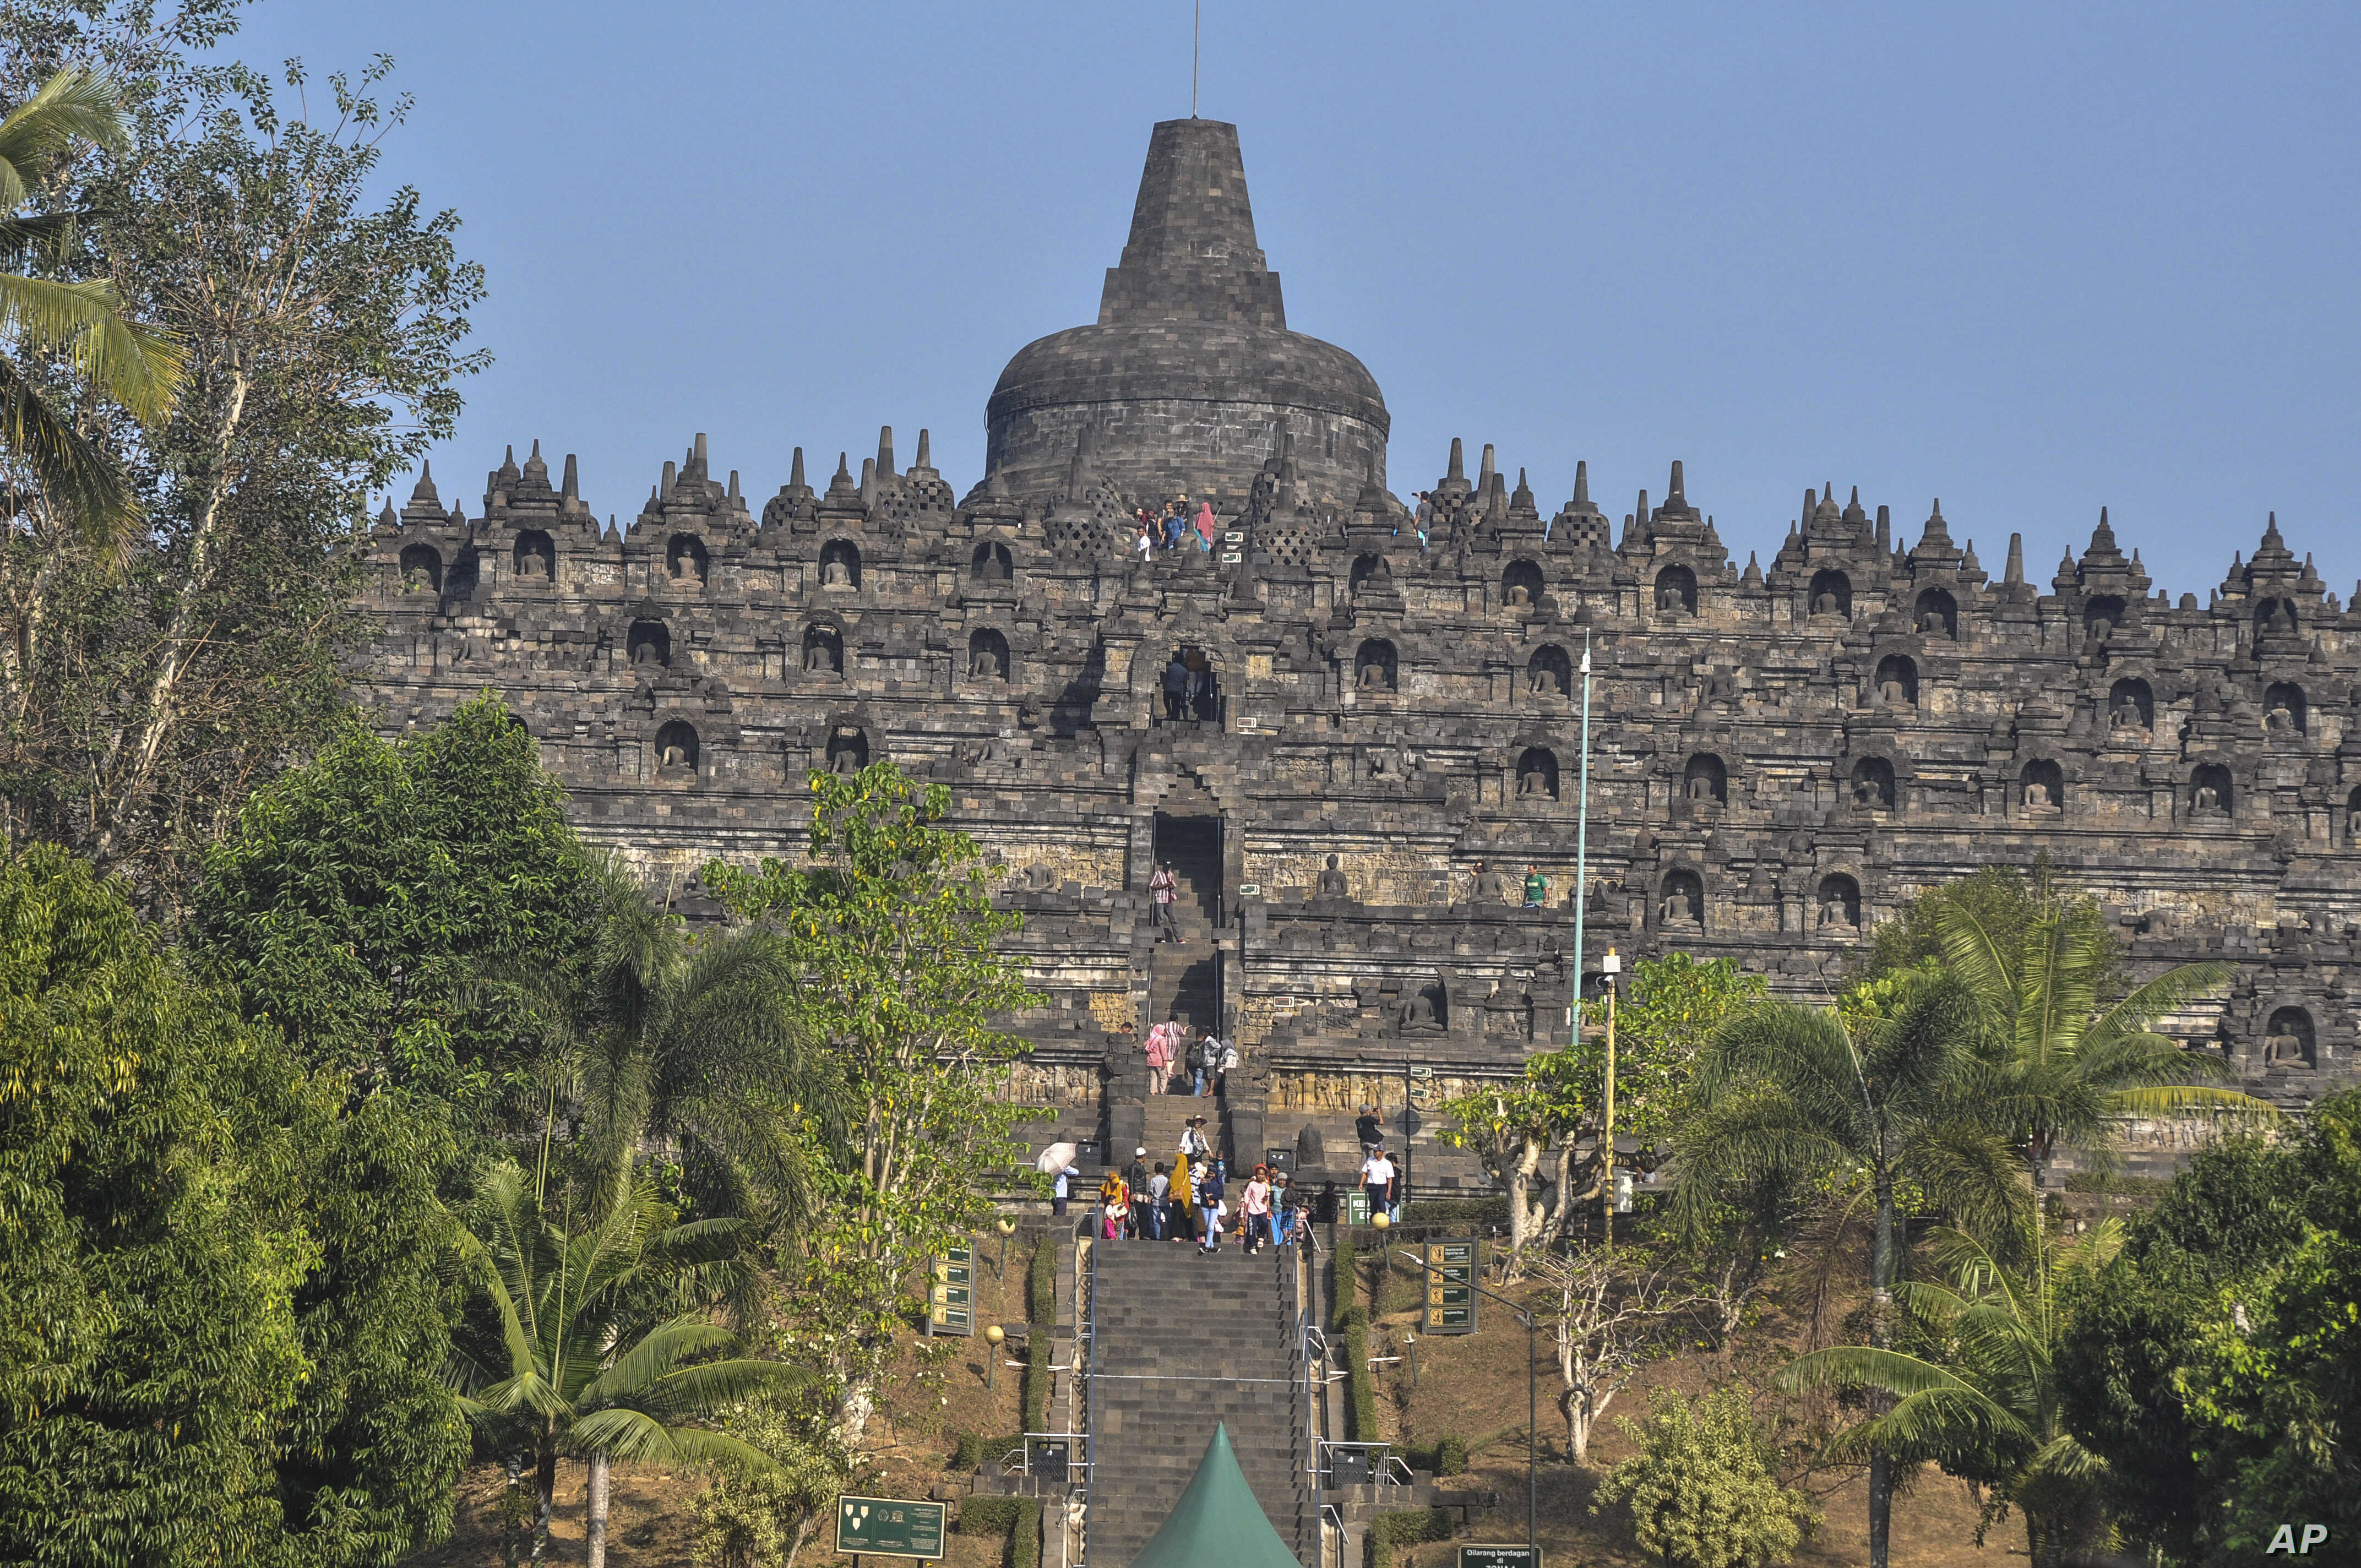 Not Just Bali: Indonesia Hopes to Develop More Tourism Sites